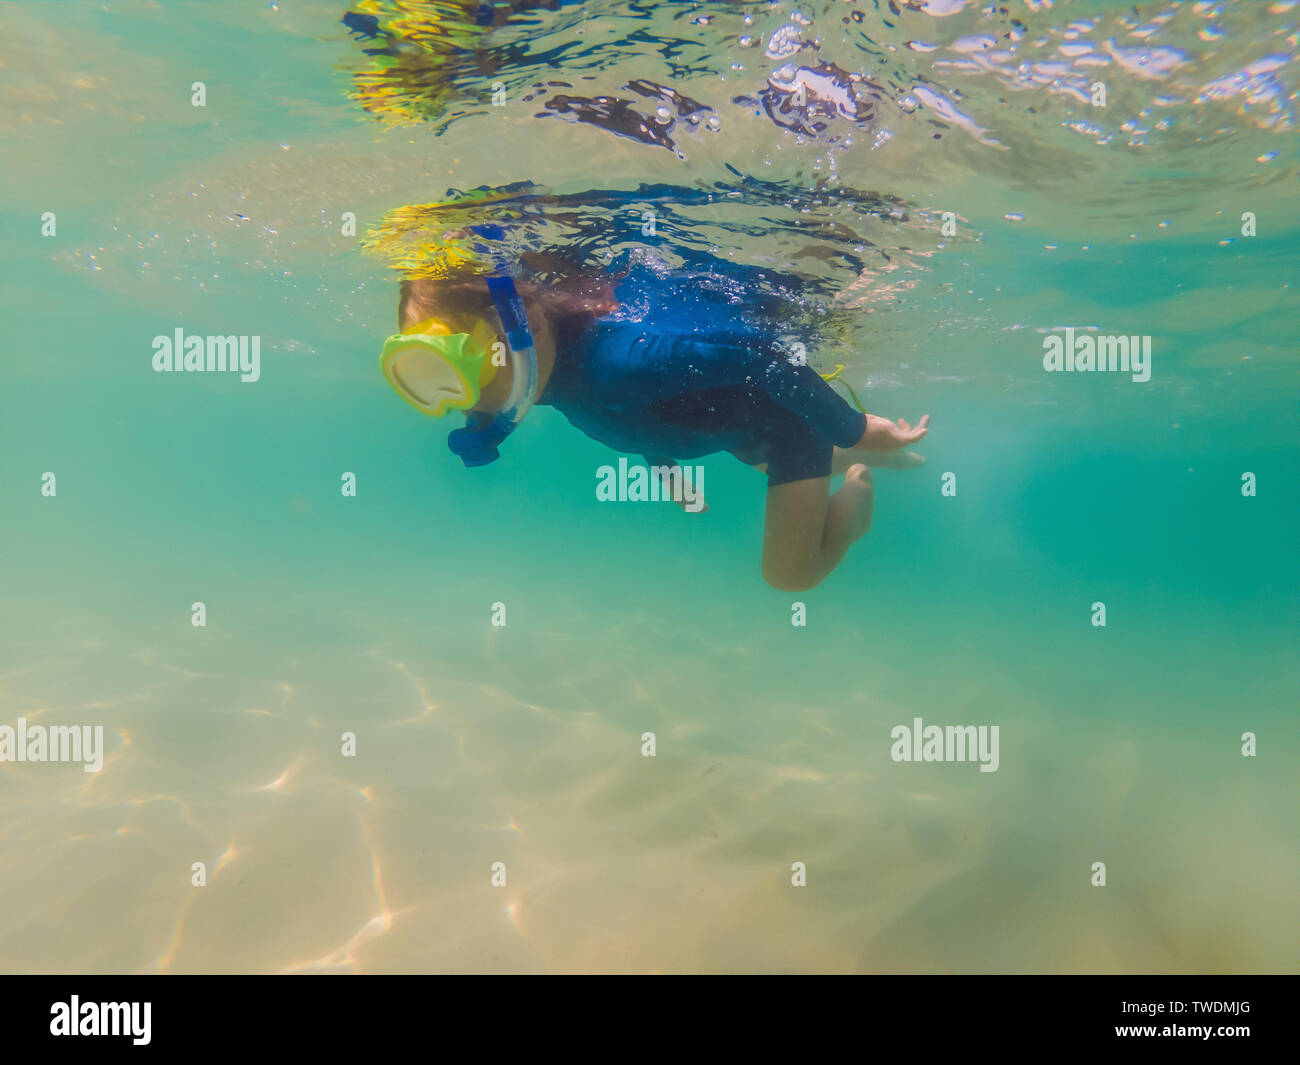 Happy family - active kid in snorkeling mask dive underwater, see tropical fish in coral reef sea pool. Travel adventure, swimming activity on summer - Stock Image